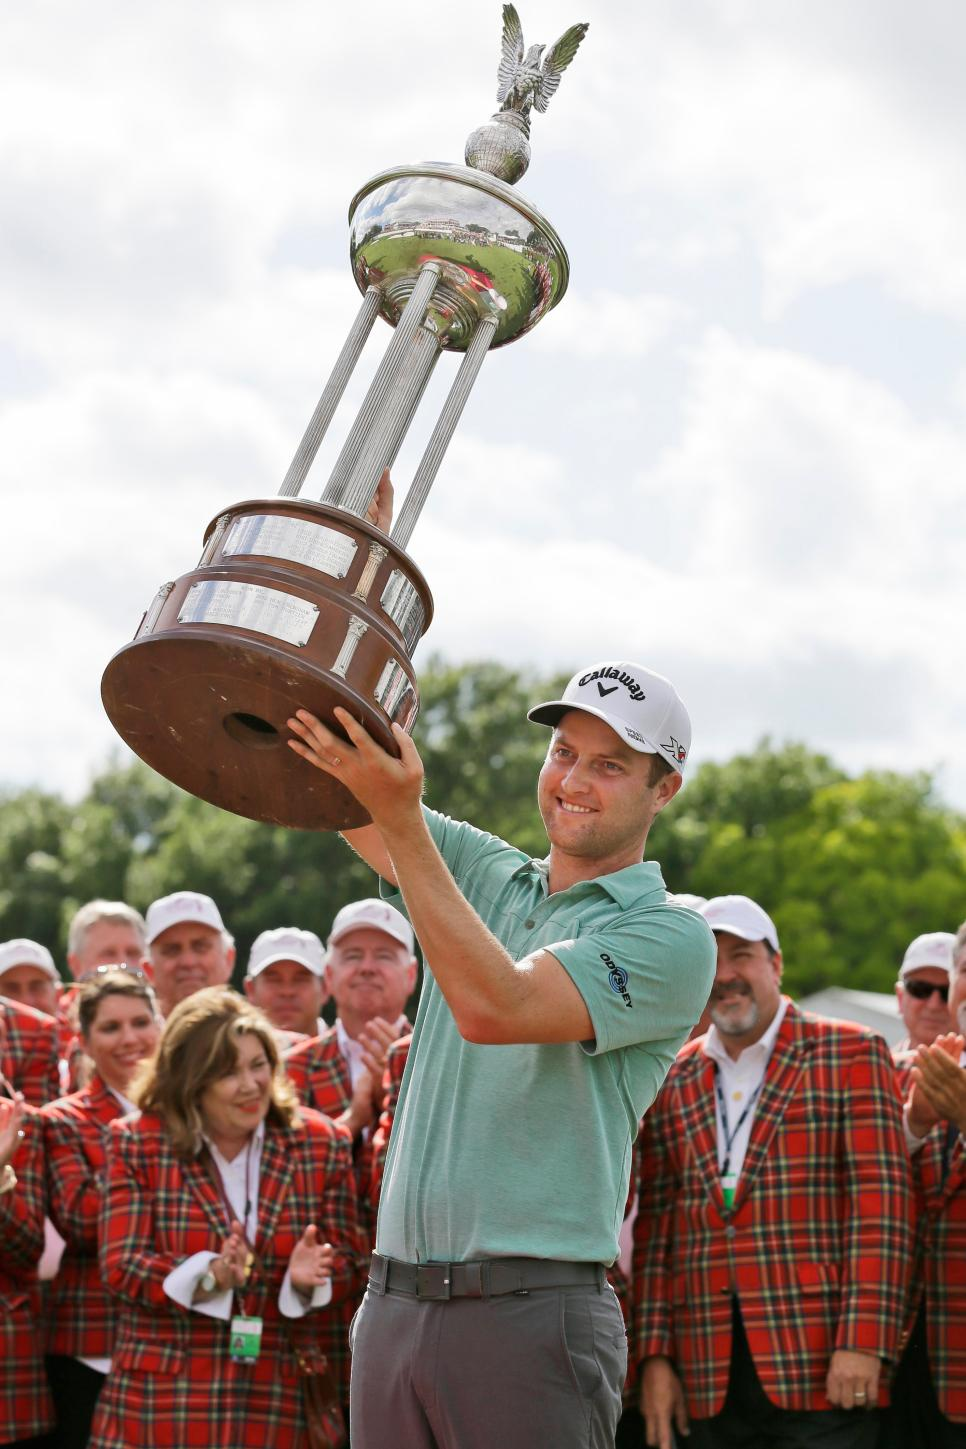 chris-kirk-colonial-trophy-2015.jpg